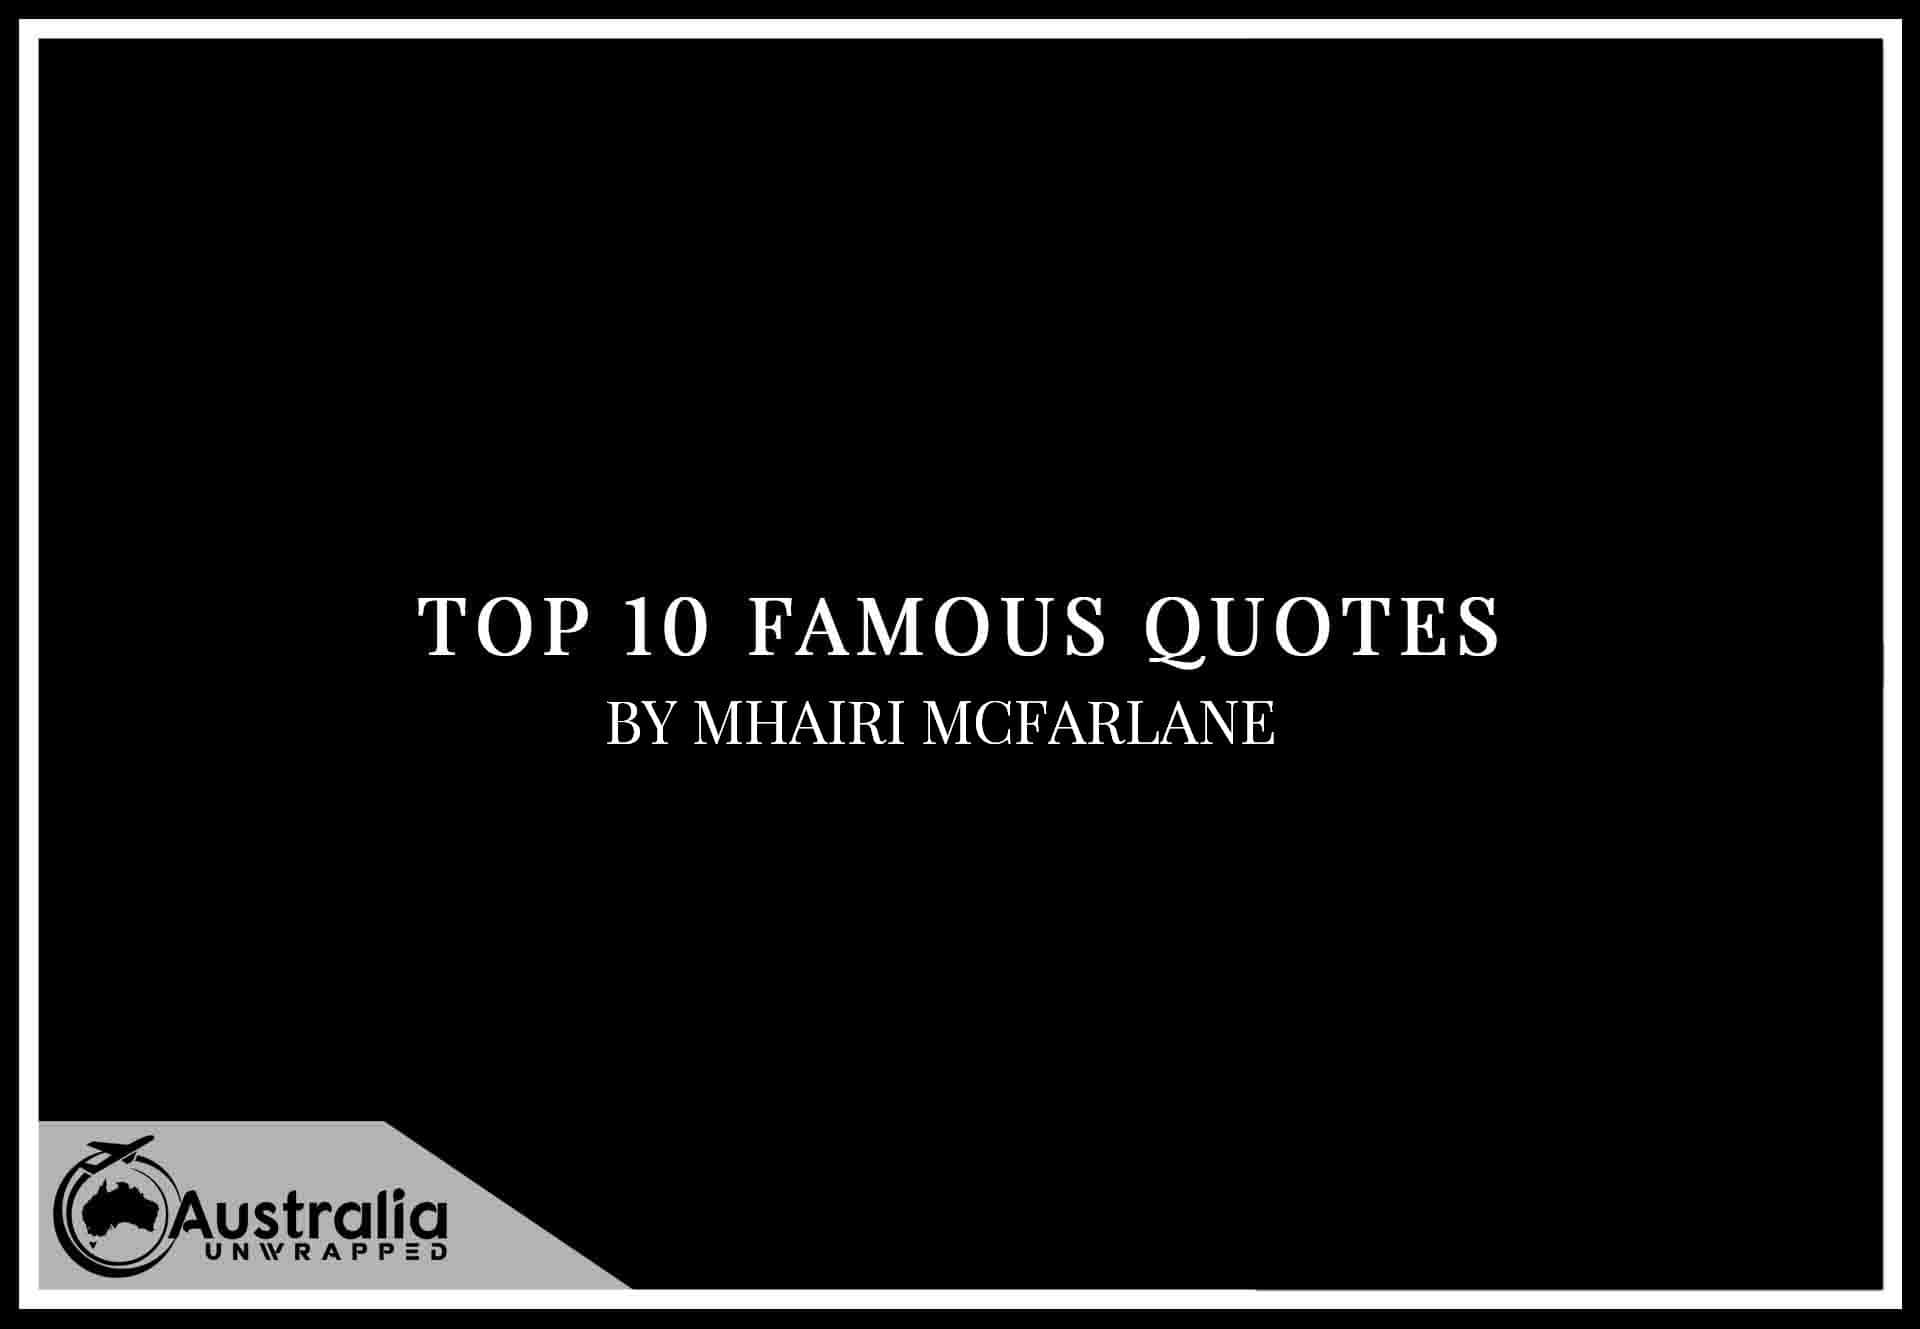 Top 10 Famous Quotes by Author Mhairi McFarlane